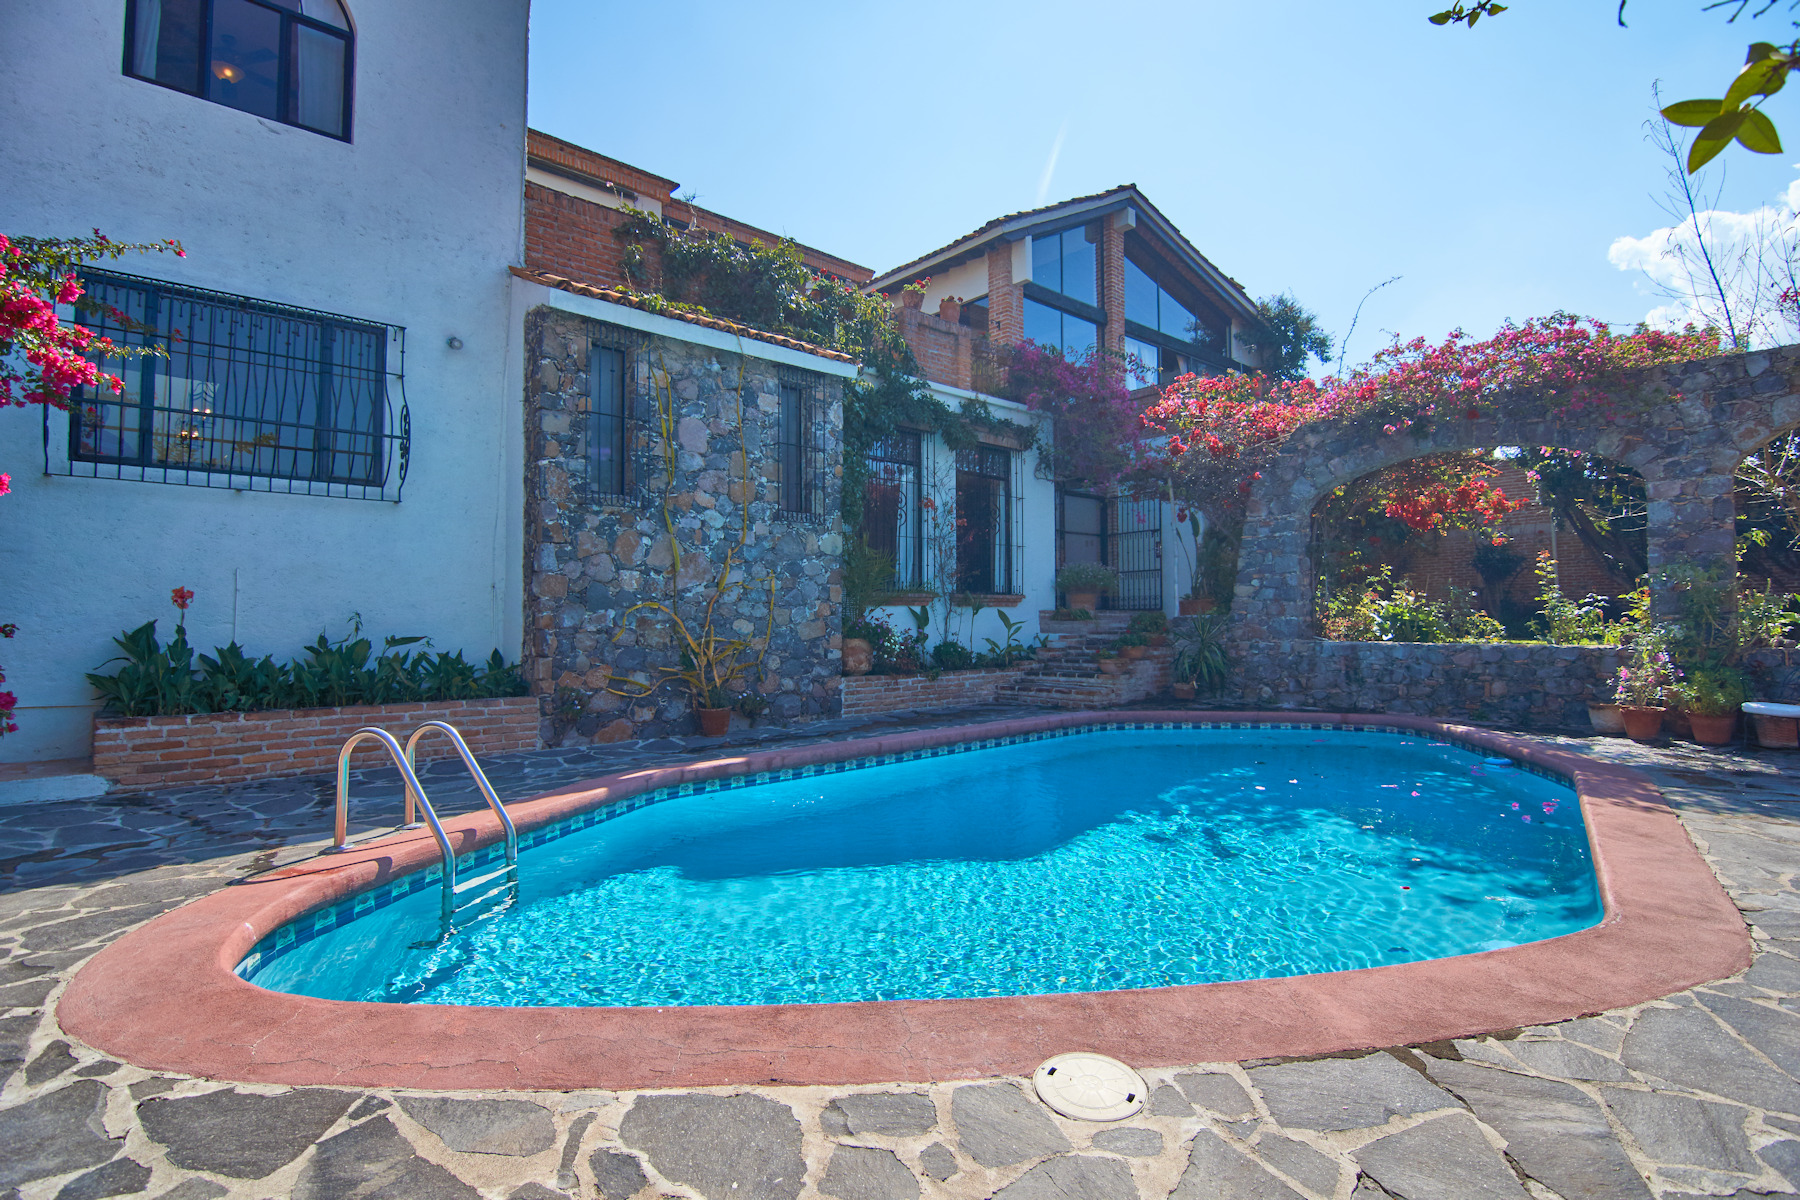 Single Family Home for Sale at CASA BELL Porton San Miguel De Allende, Guanajuato 37710 Mexico